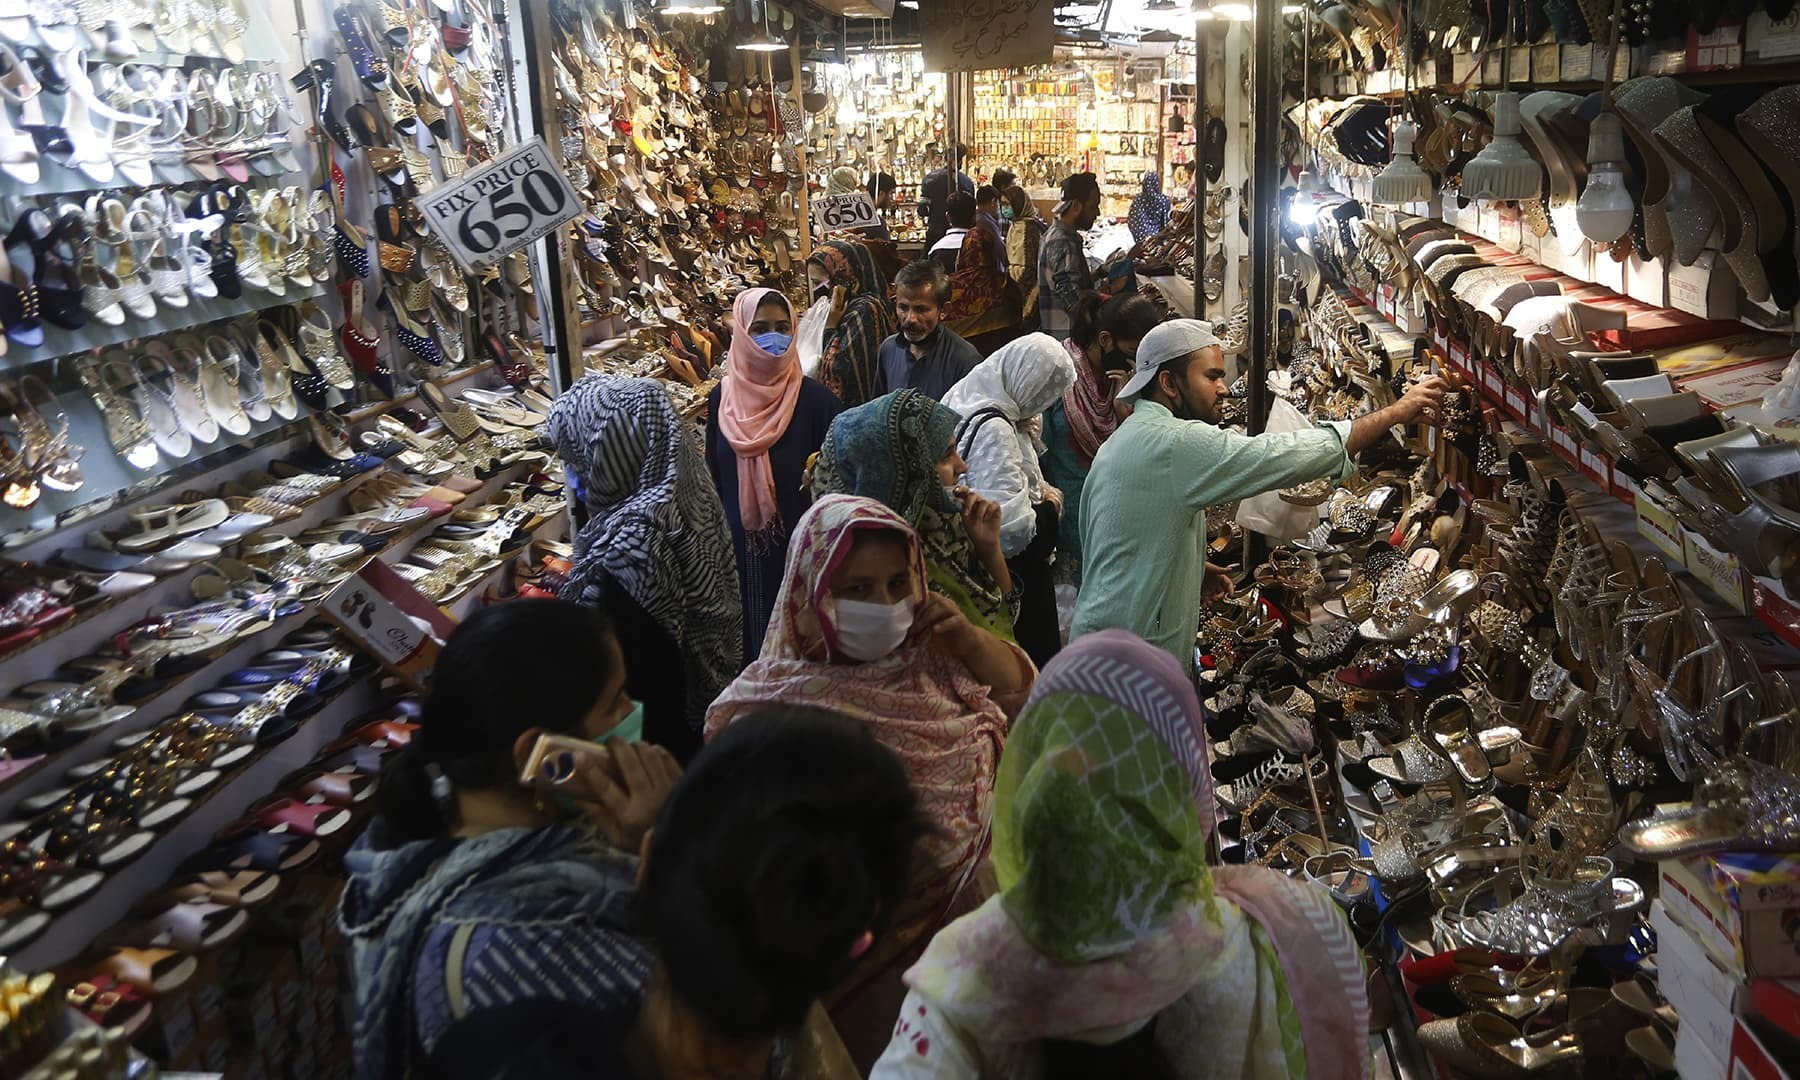 People visit a market after the government relaxed the weeks-long lockdown that was enforced to curb the spread of the coronavirus, in Lahore, May 11, 2020. — AP